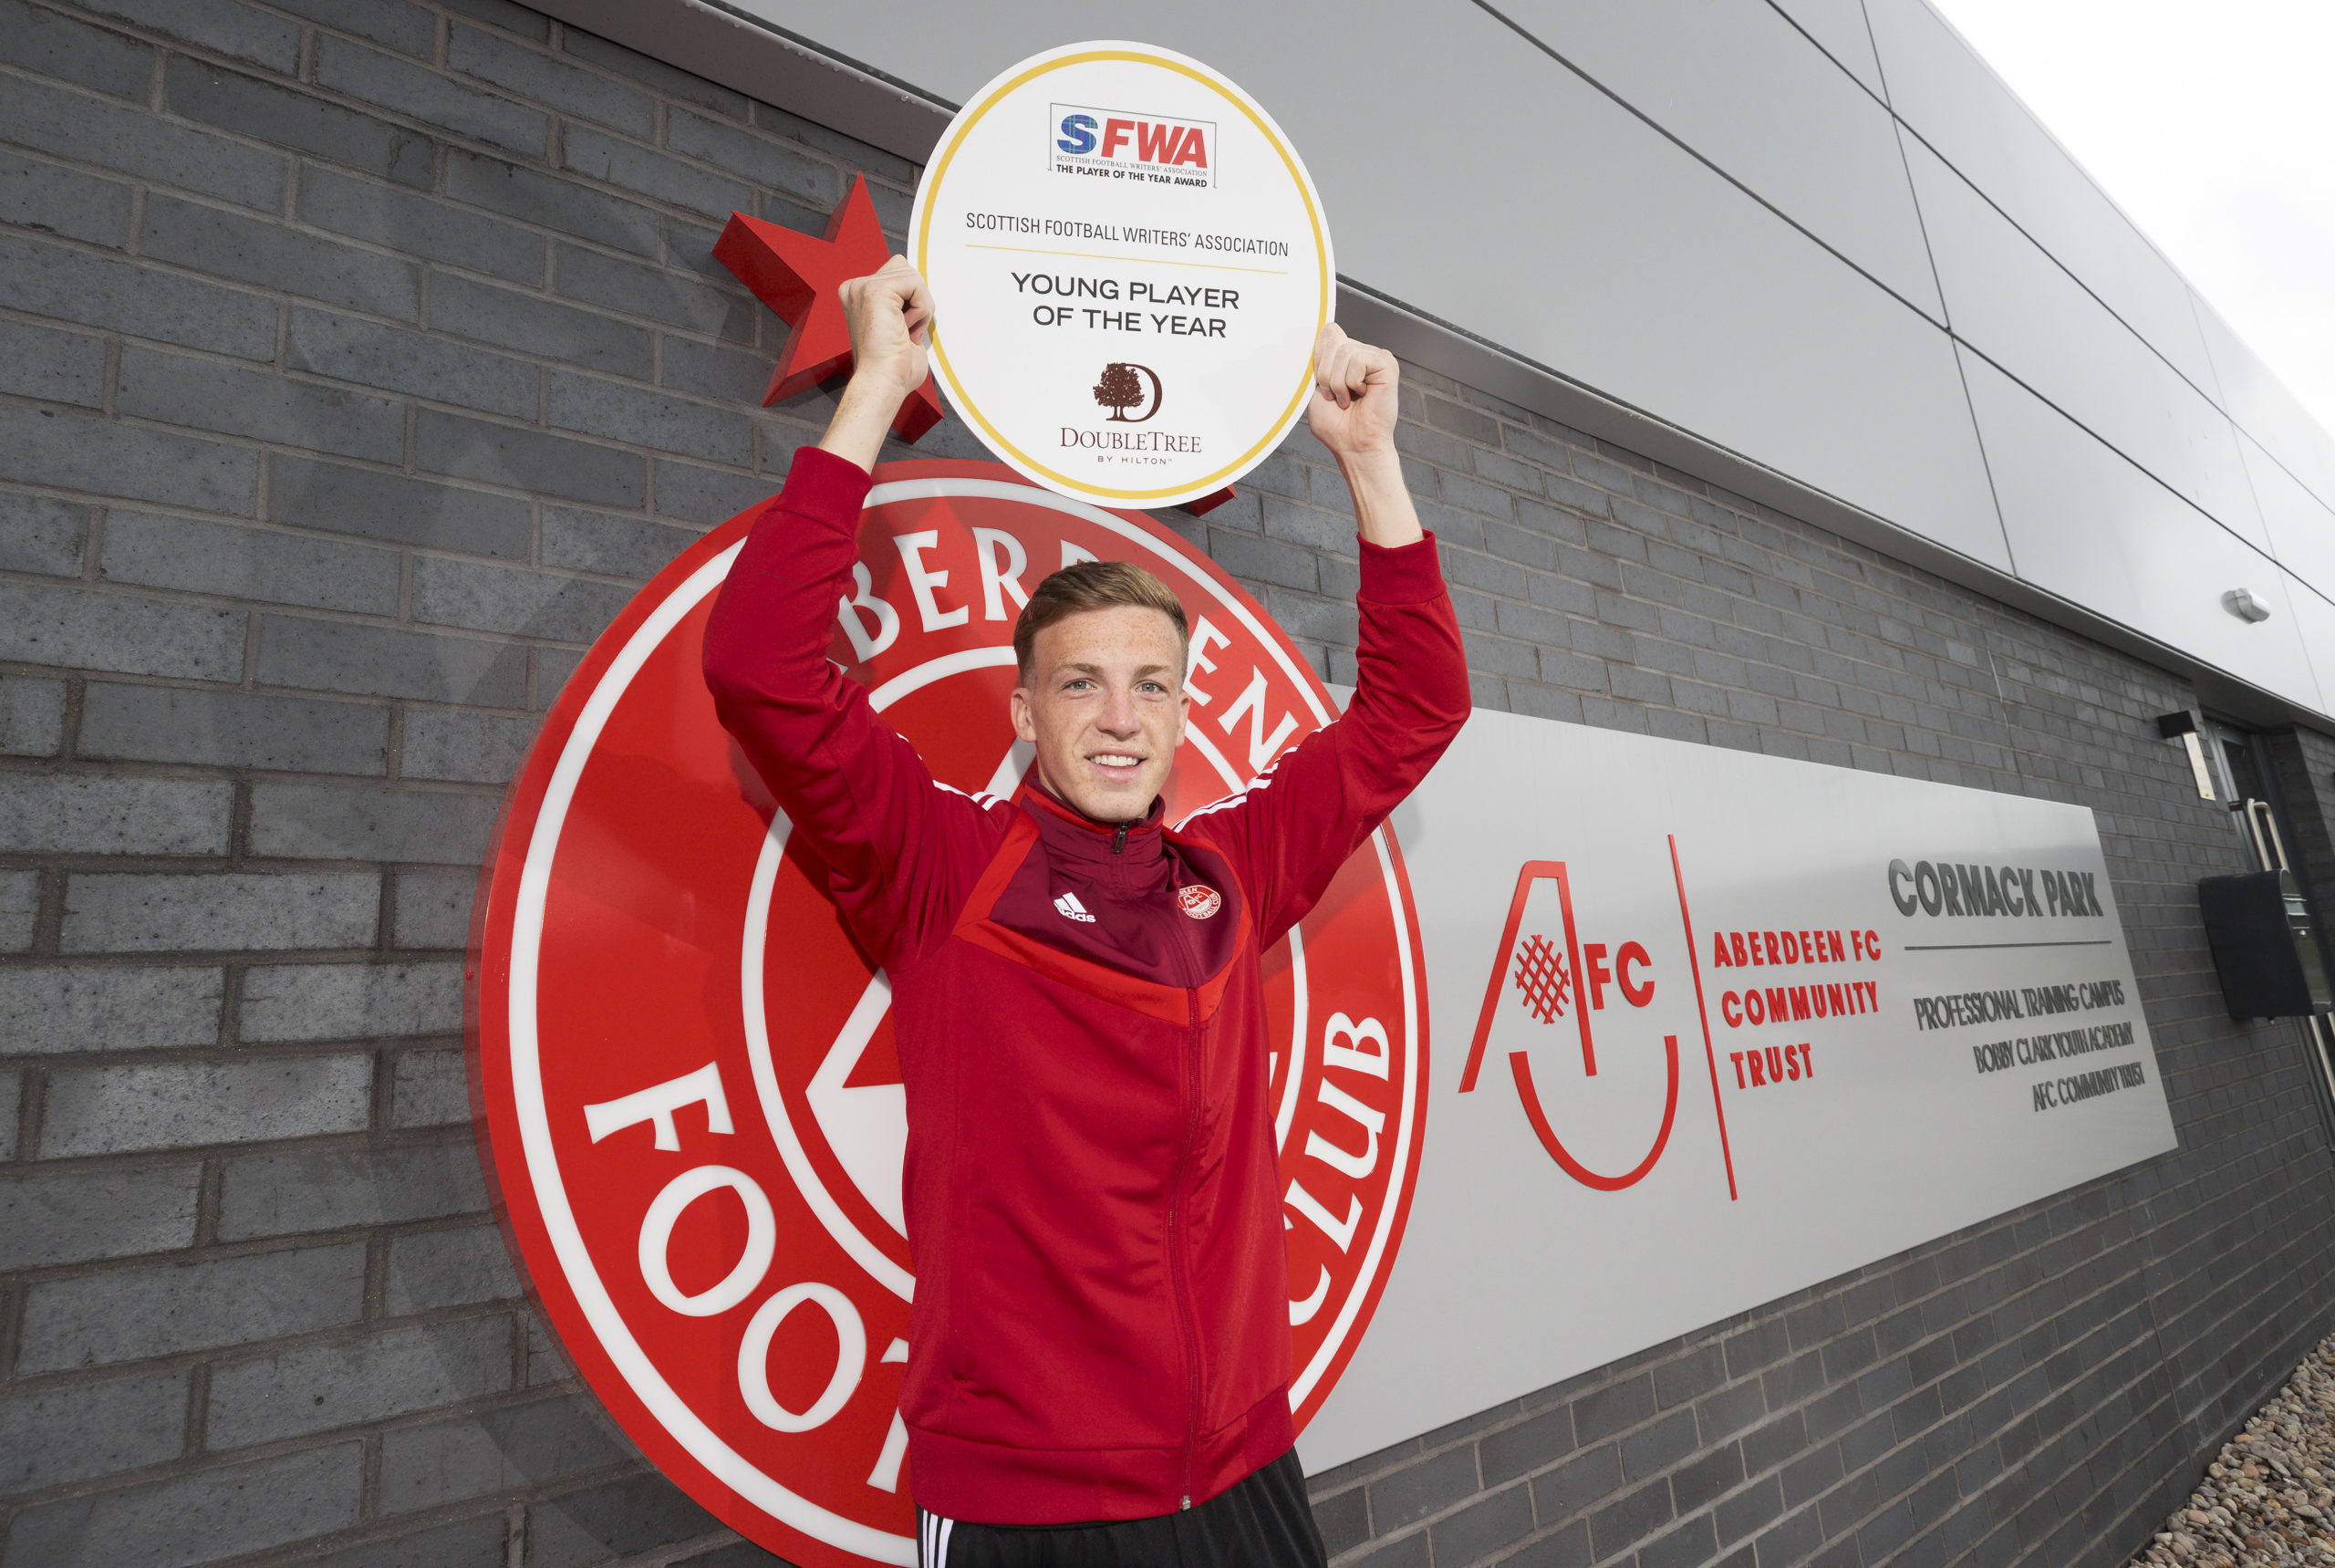 Lewis Ferguson was named SFWA Young Player of the Year